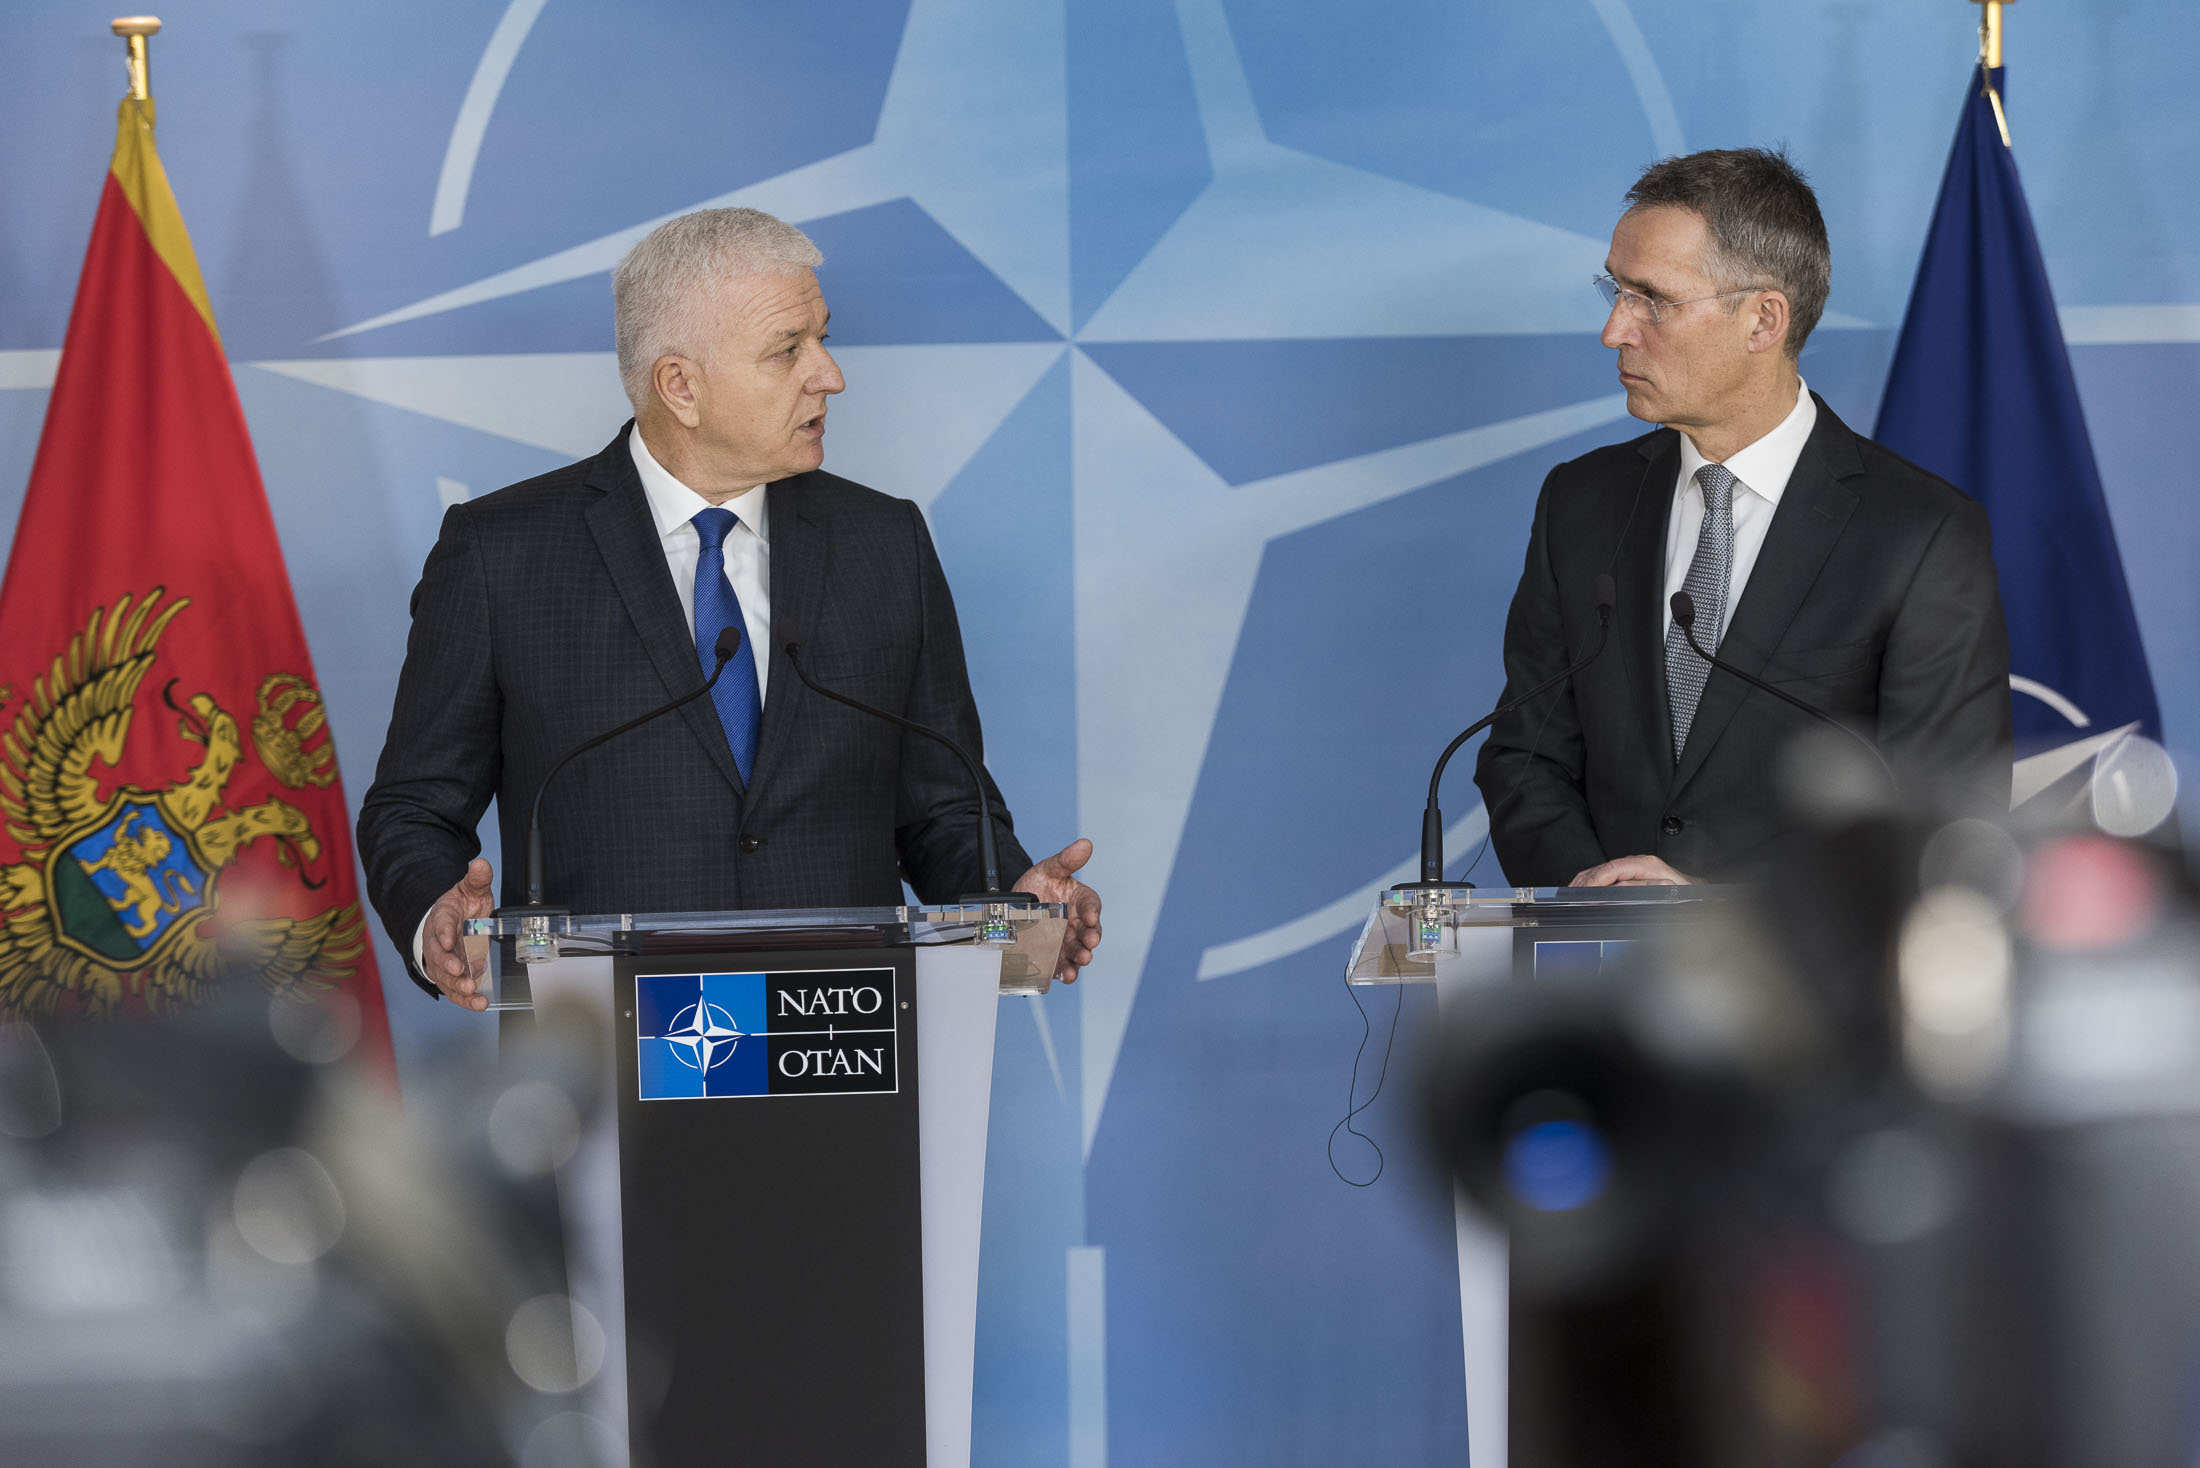 Montenegrin Prime Minister Marković and NATO Secretary General Stoltenberg. Source: NATO